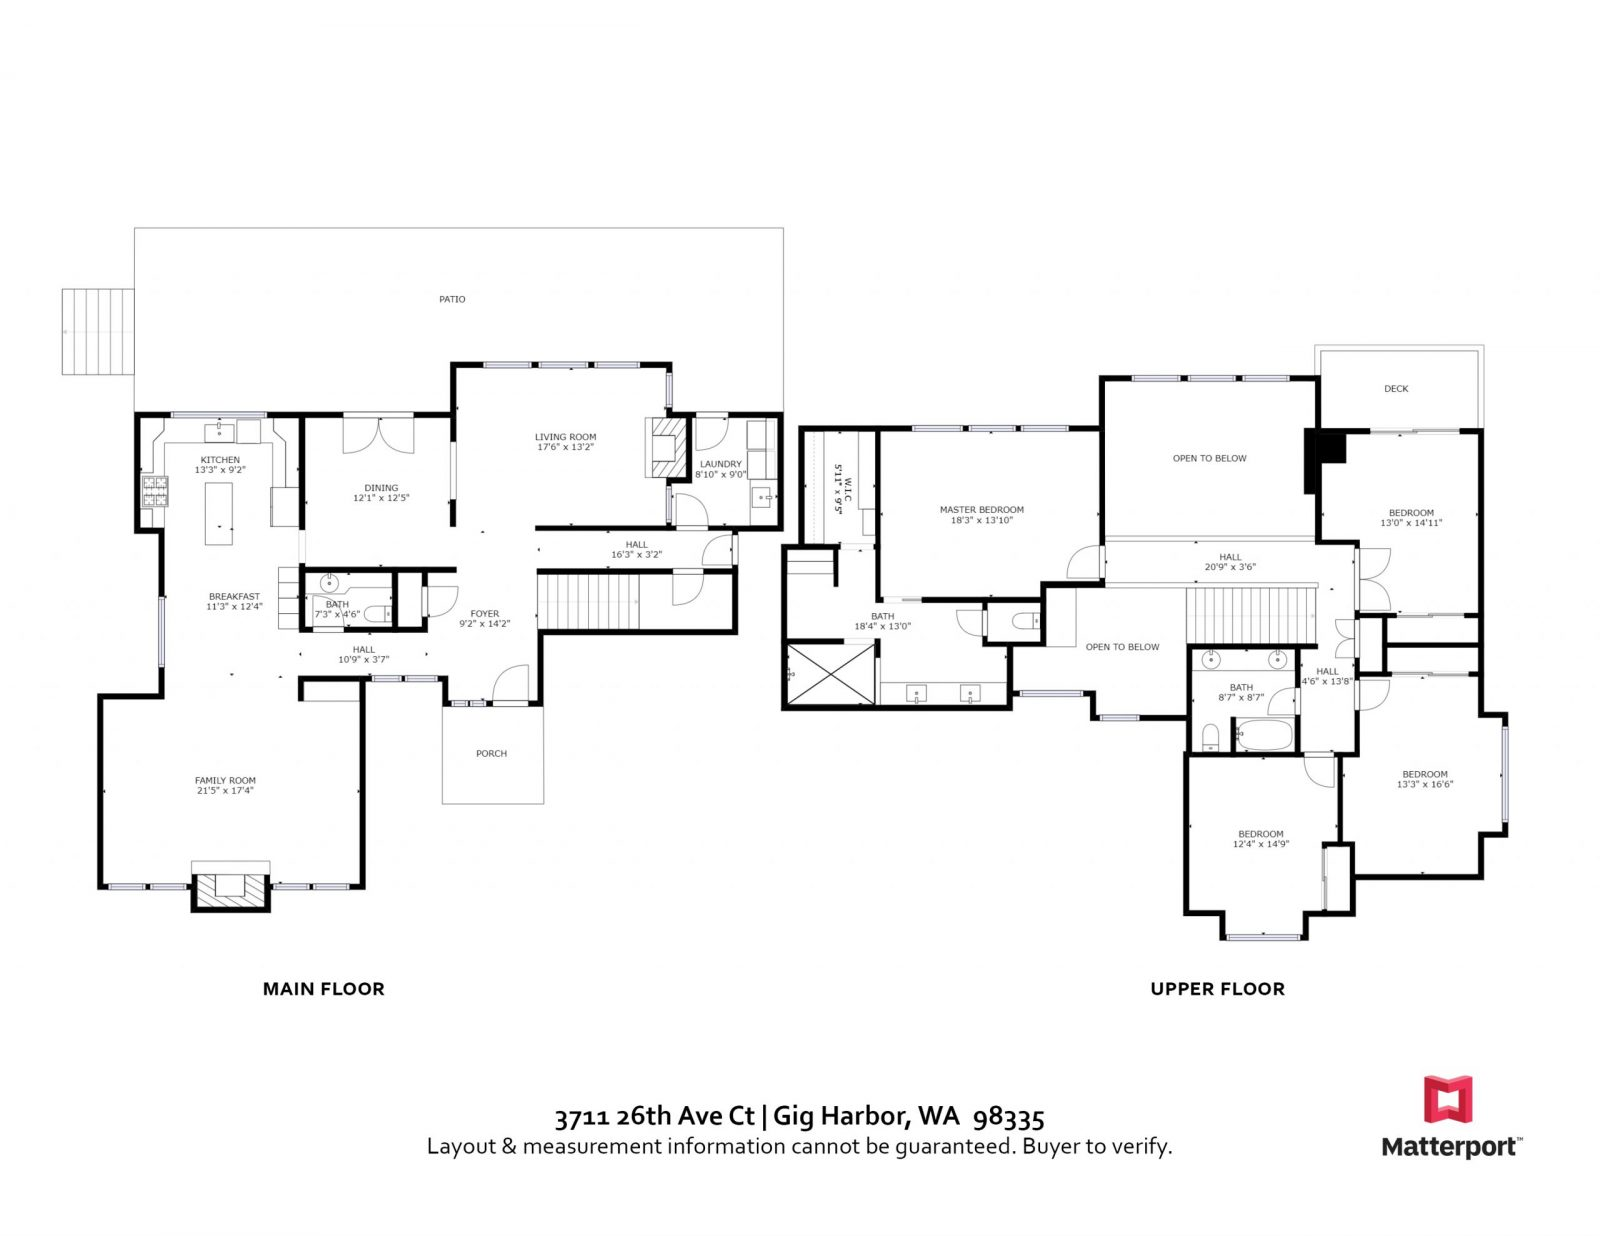 FLOOR PLAN: 3711 26th Ave Ct NW, Gig Harbor WA 98335